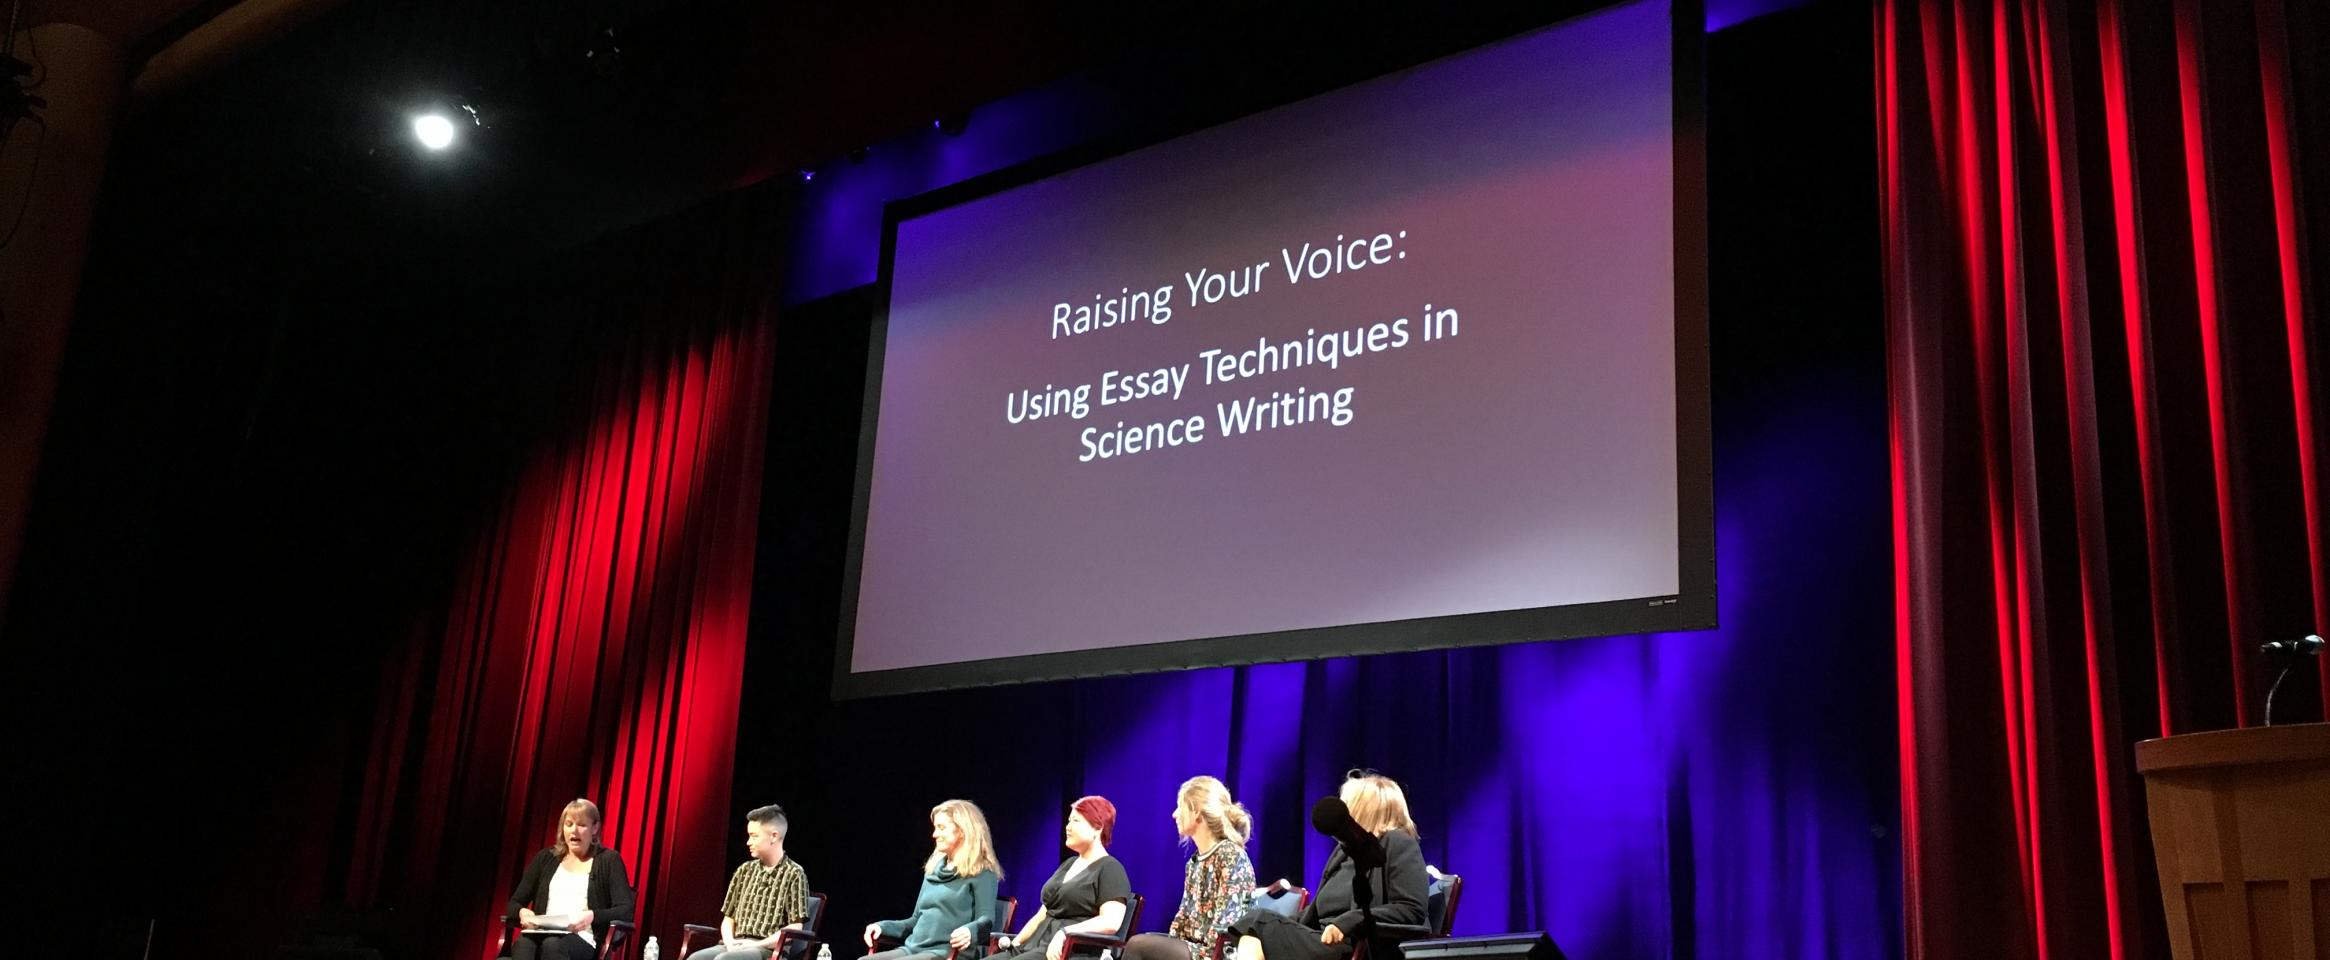 ScienceWriters 2018 panel: Raising your voice